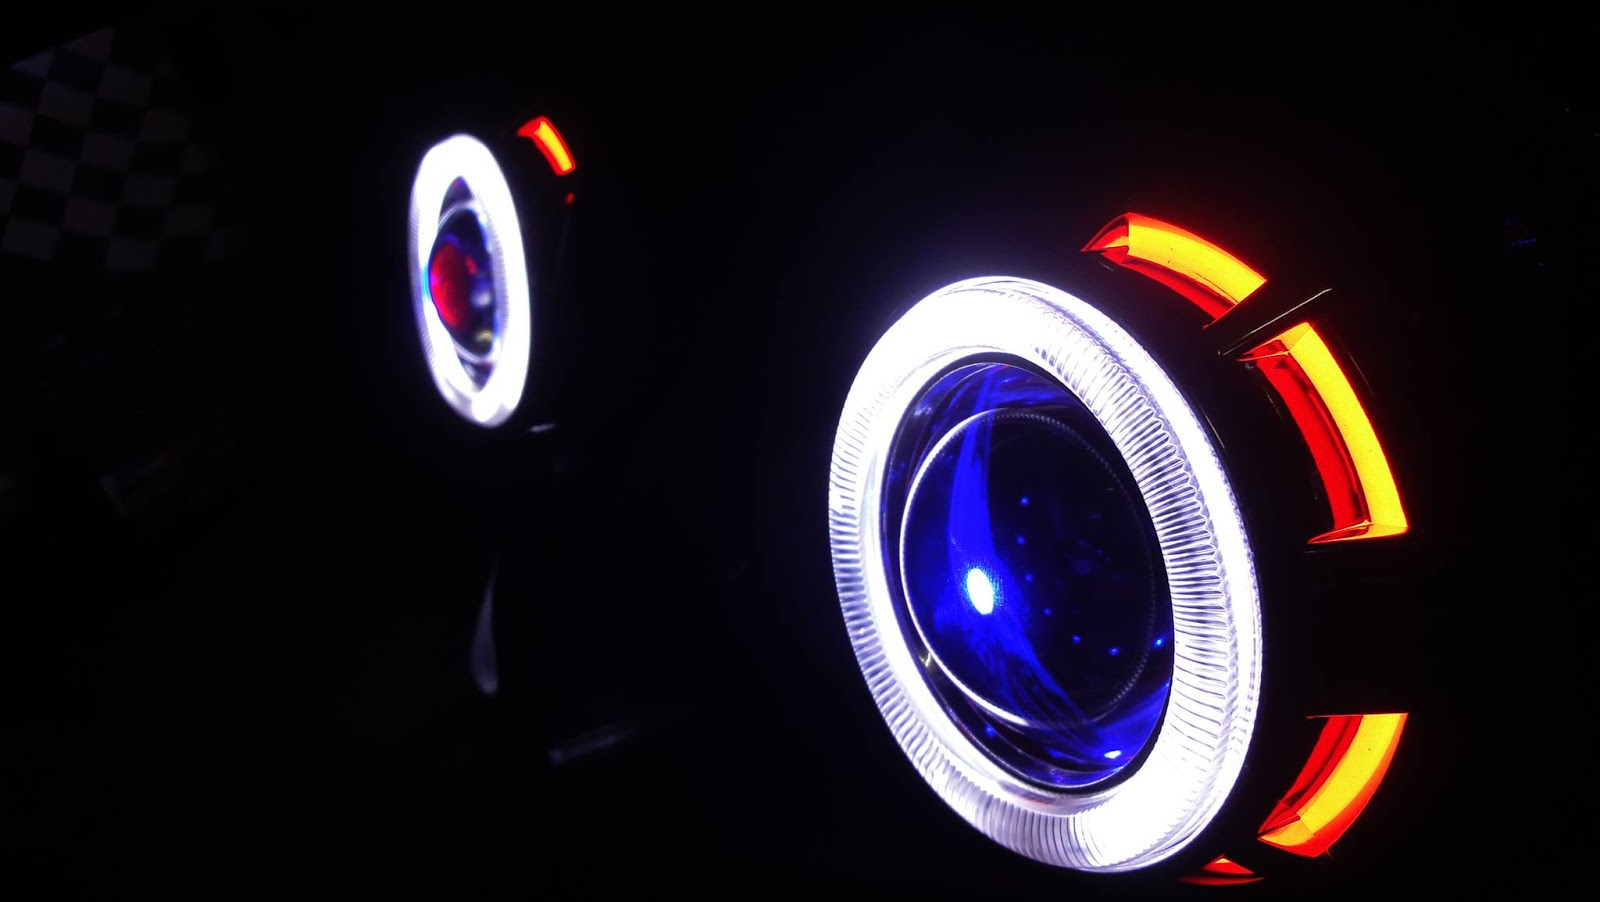 R15 V2 Modified With Projector Lights Devil Eyes | Yamaha R1...